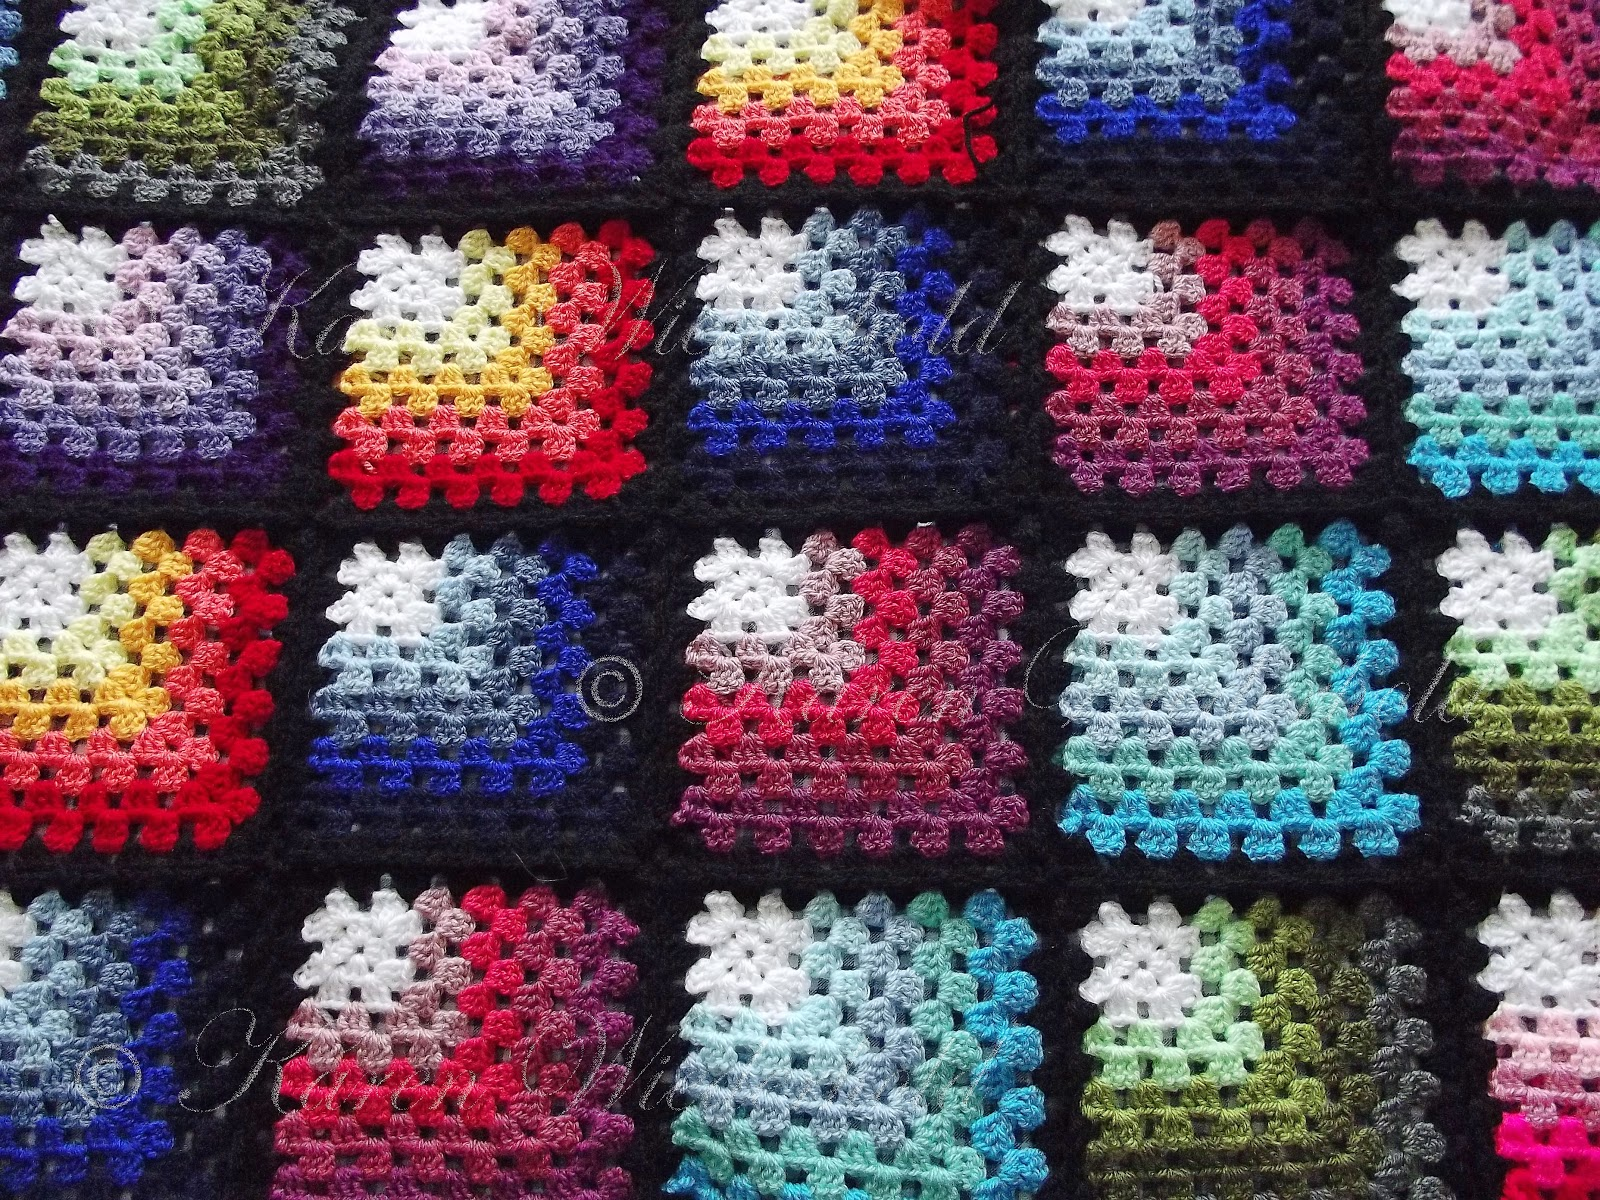 Crochet Patterns Granny Square Afghan : ... Granny Square Blanket - Free Crochet Pattern - Copyright 2013-2015